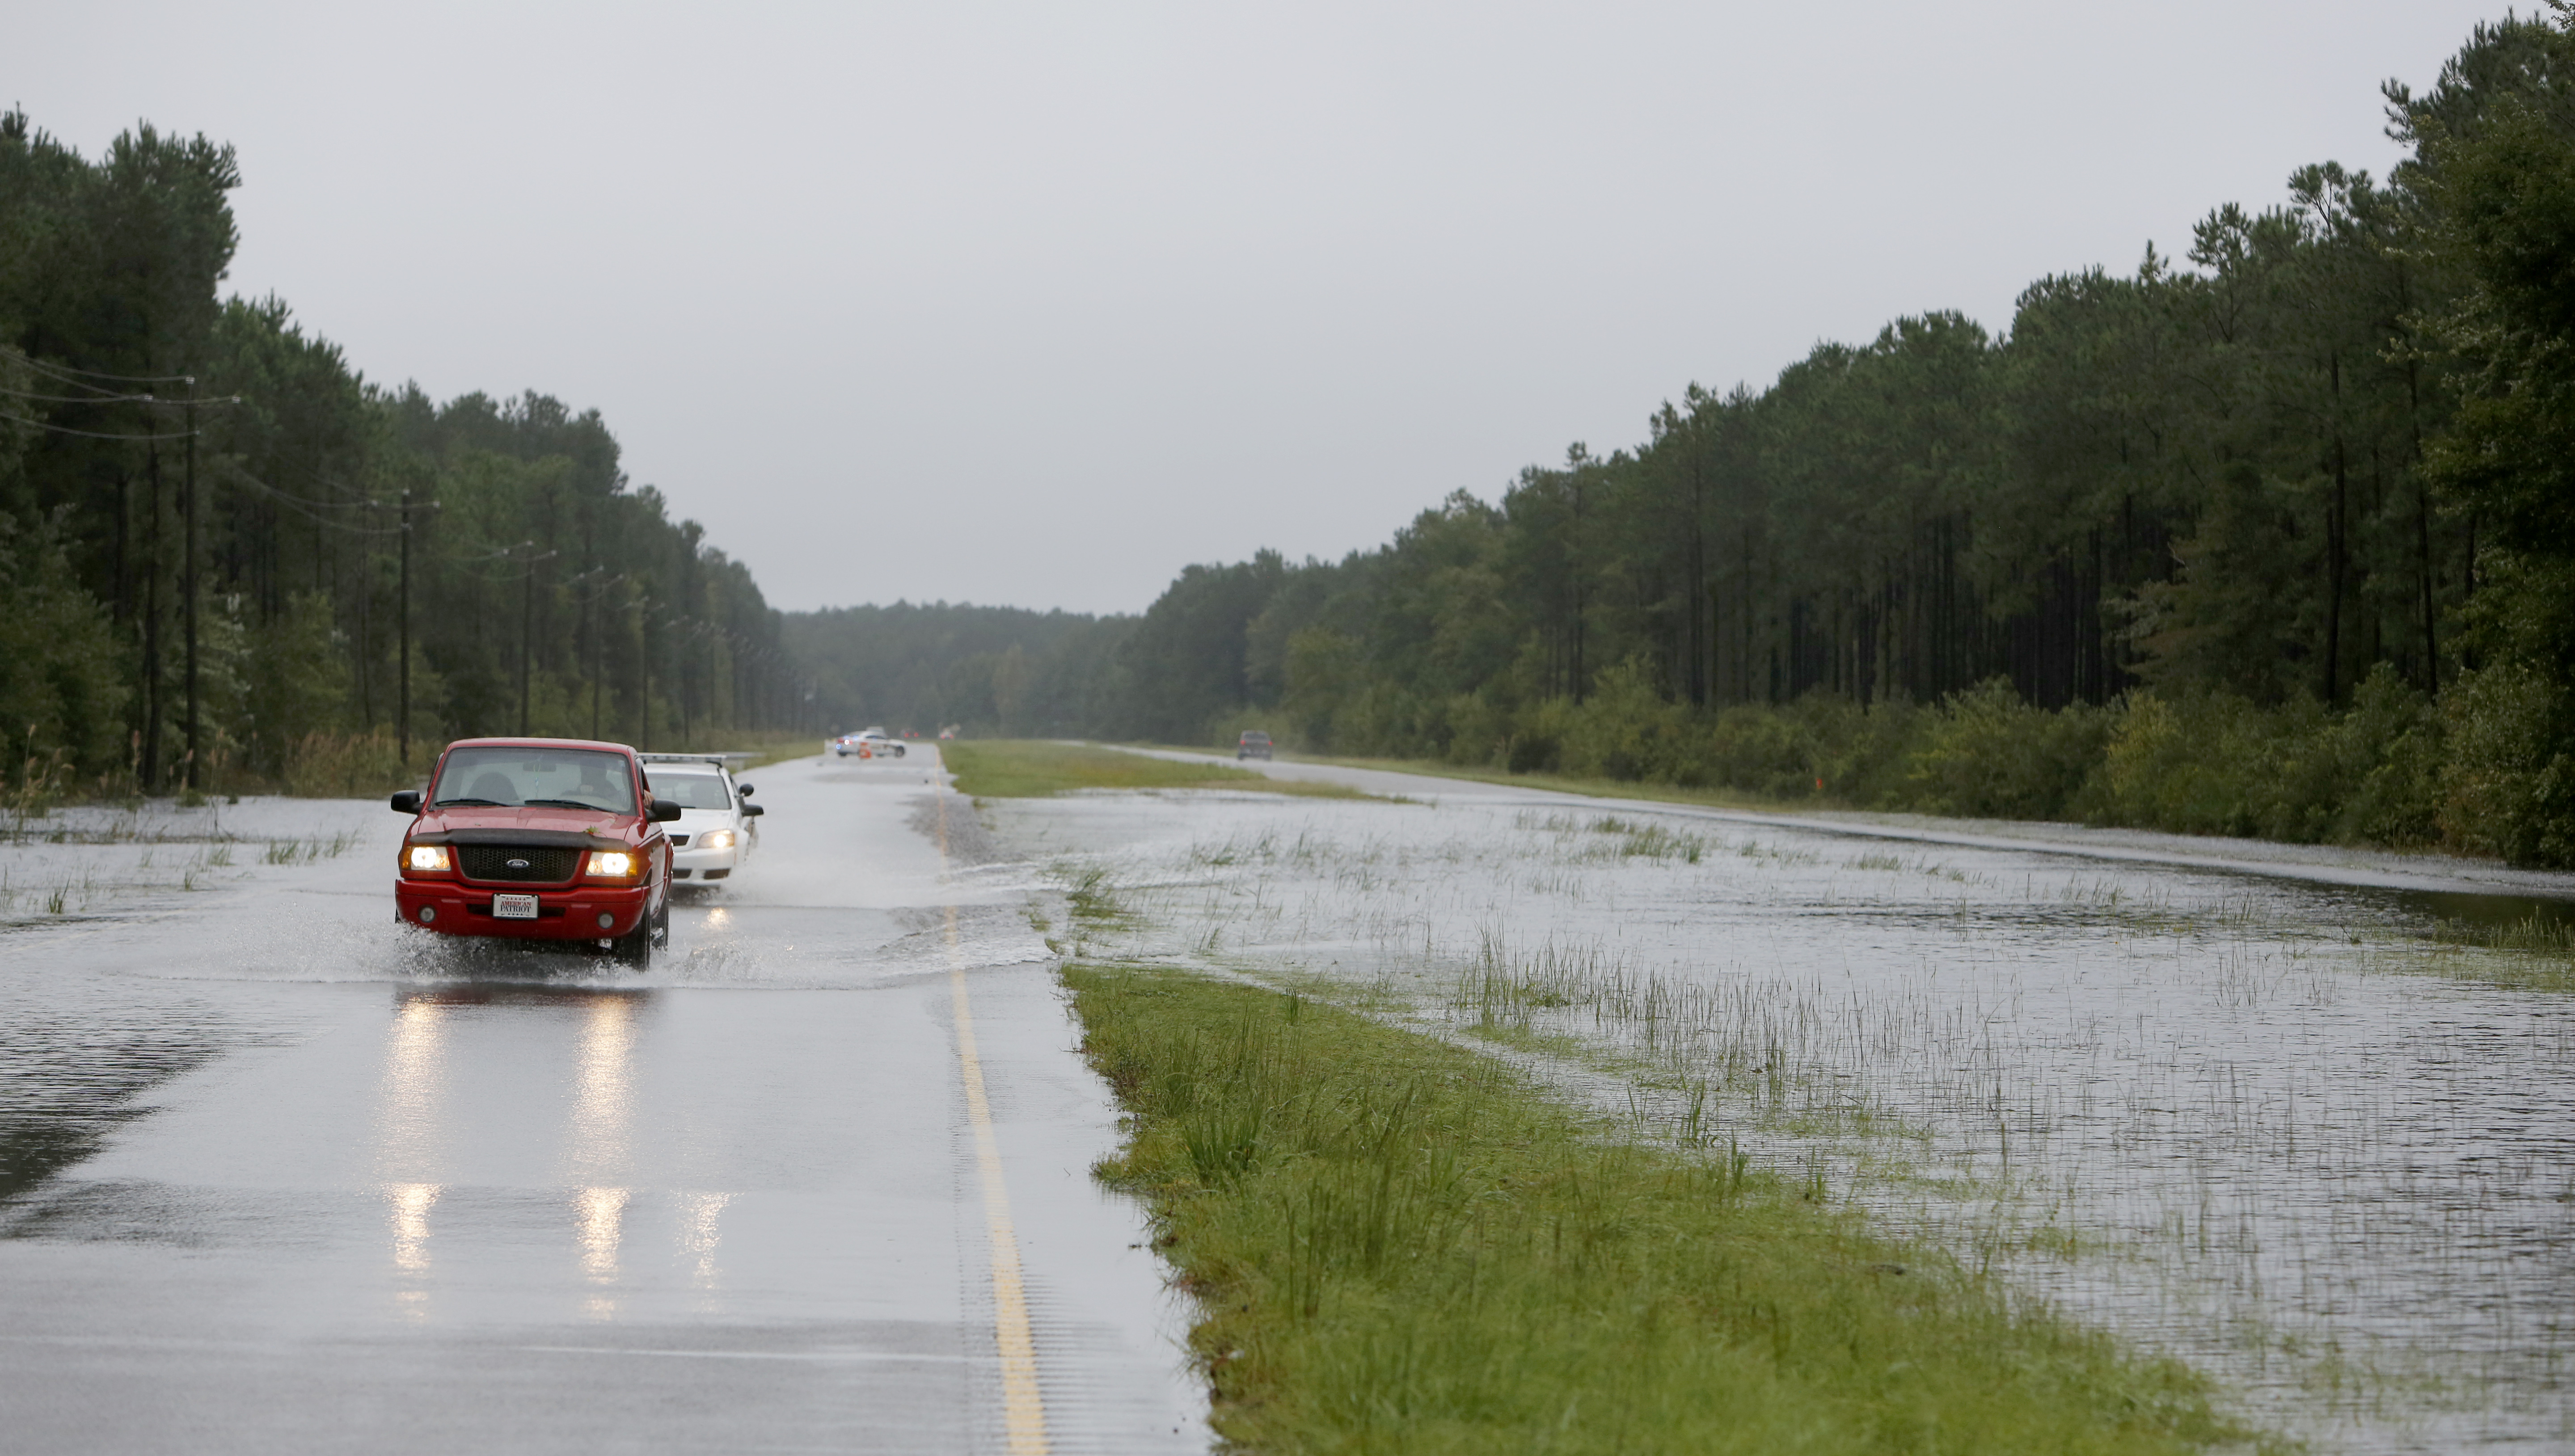 Traffic makes its way through floodwaters on Highway 17 North near Awendaw, S.C., Sunday, Oct. 4, 2015. Several sections of Highway 17 are shut down between Charleston and Georgetown. (AP Photo/Mic Smith)